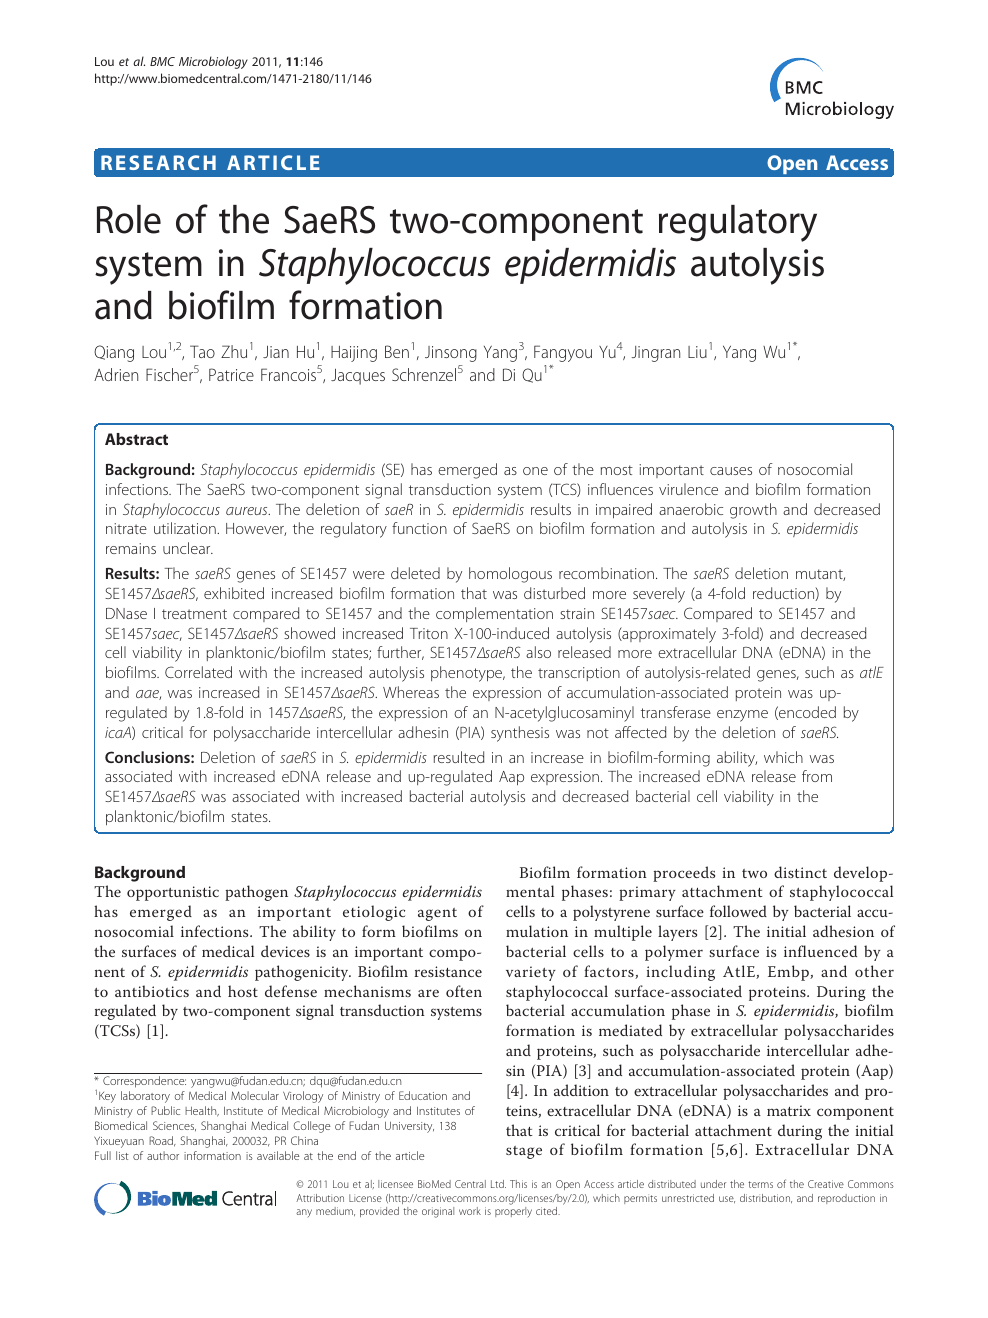 Role of the SaeRS two-component regulatory system in Staphylococcus